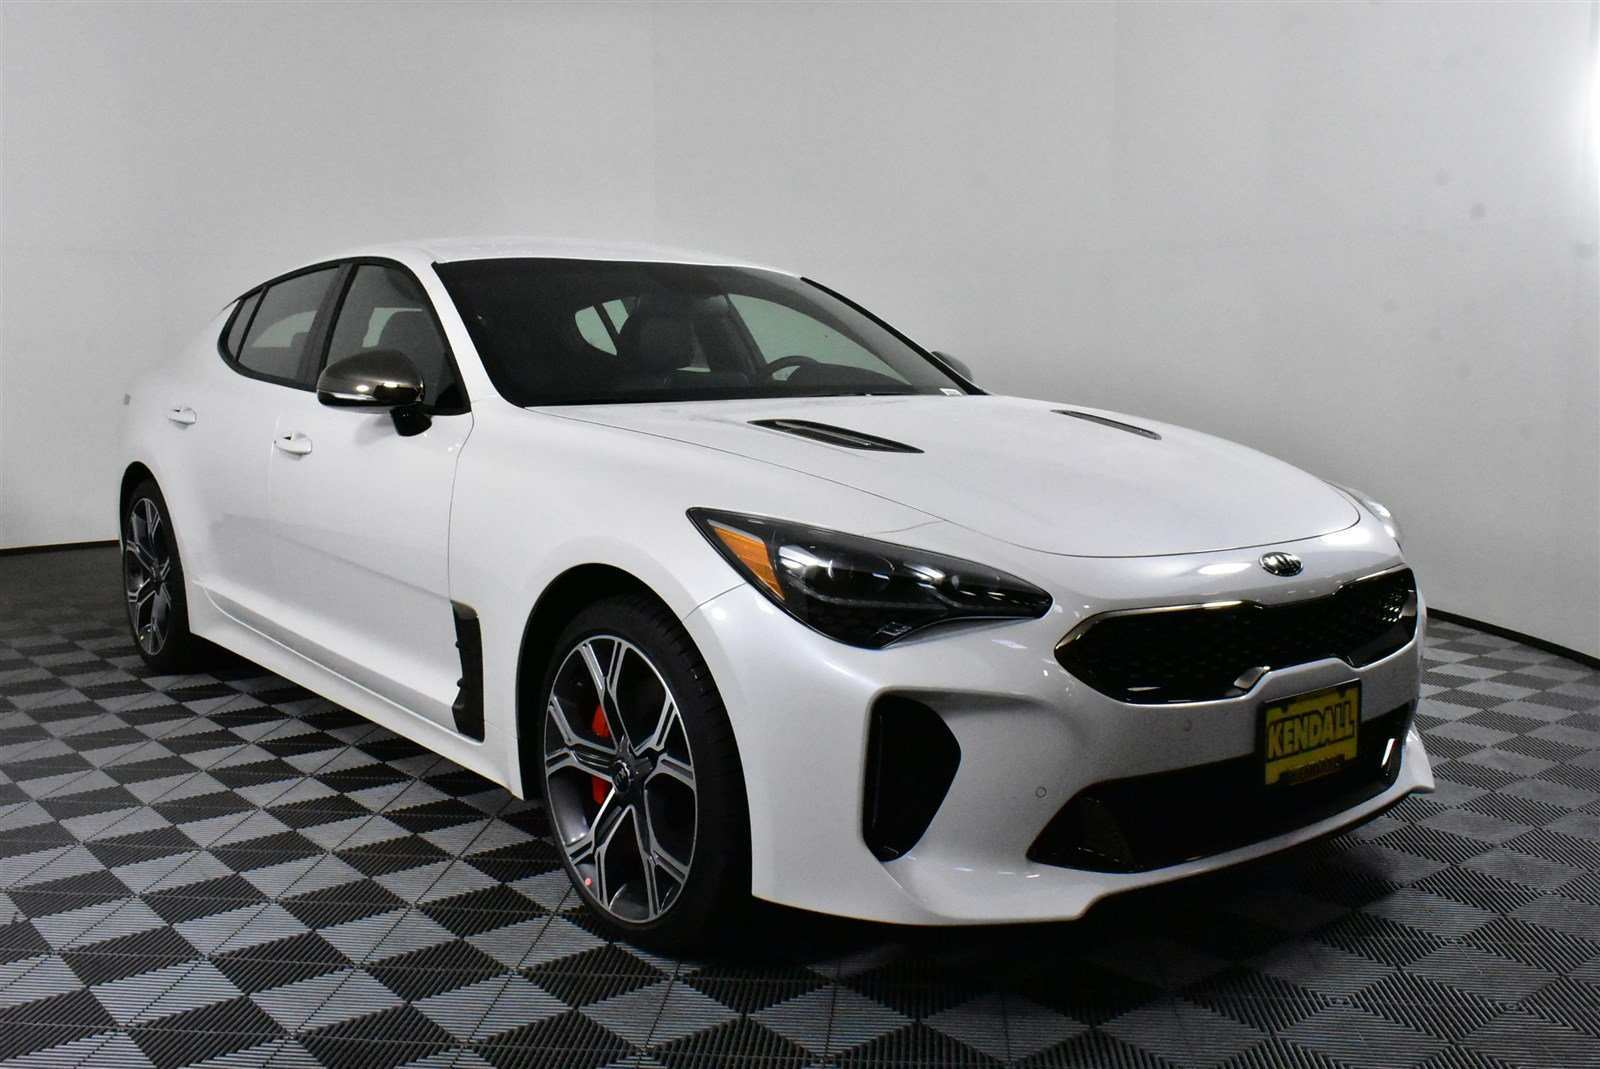 23 Gallery of 2019 Kia Gt Stinger Review for 2019 Kia Gt Stinger